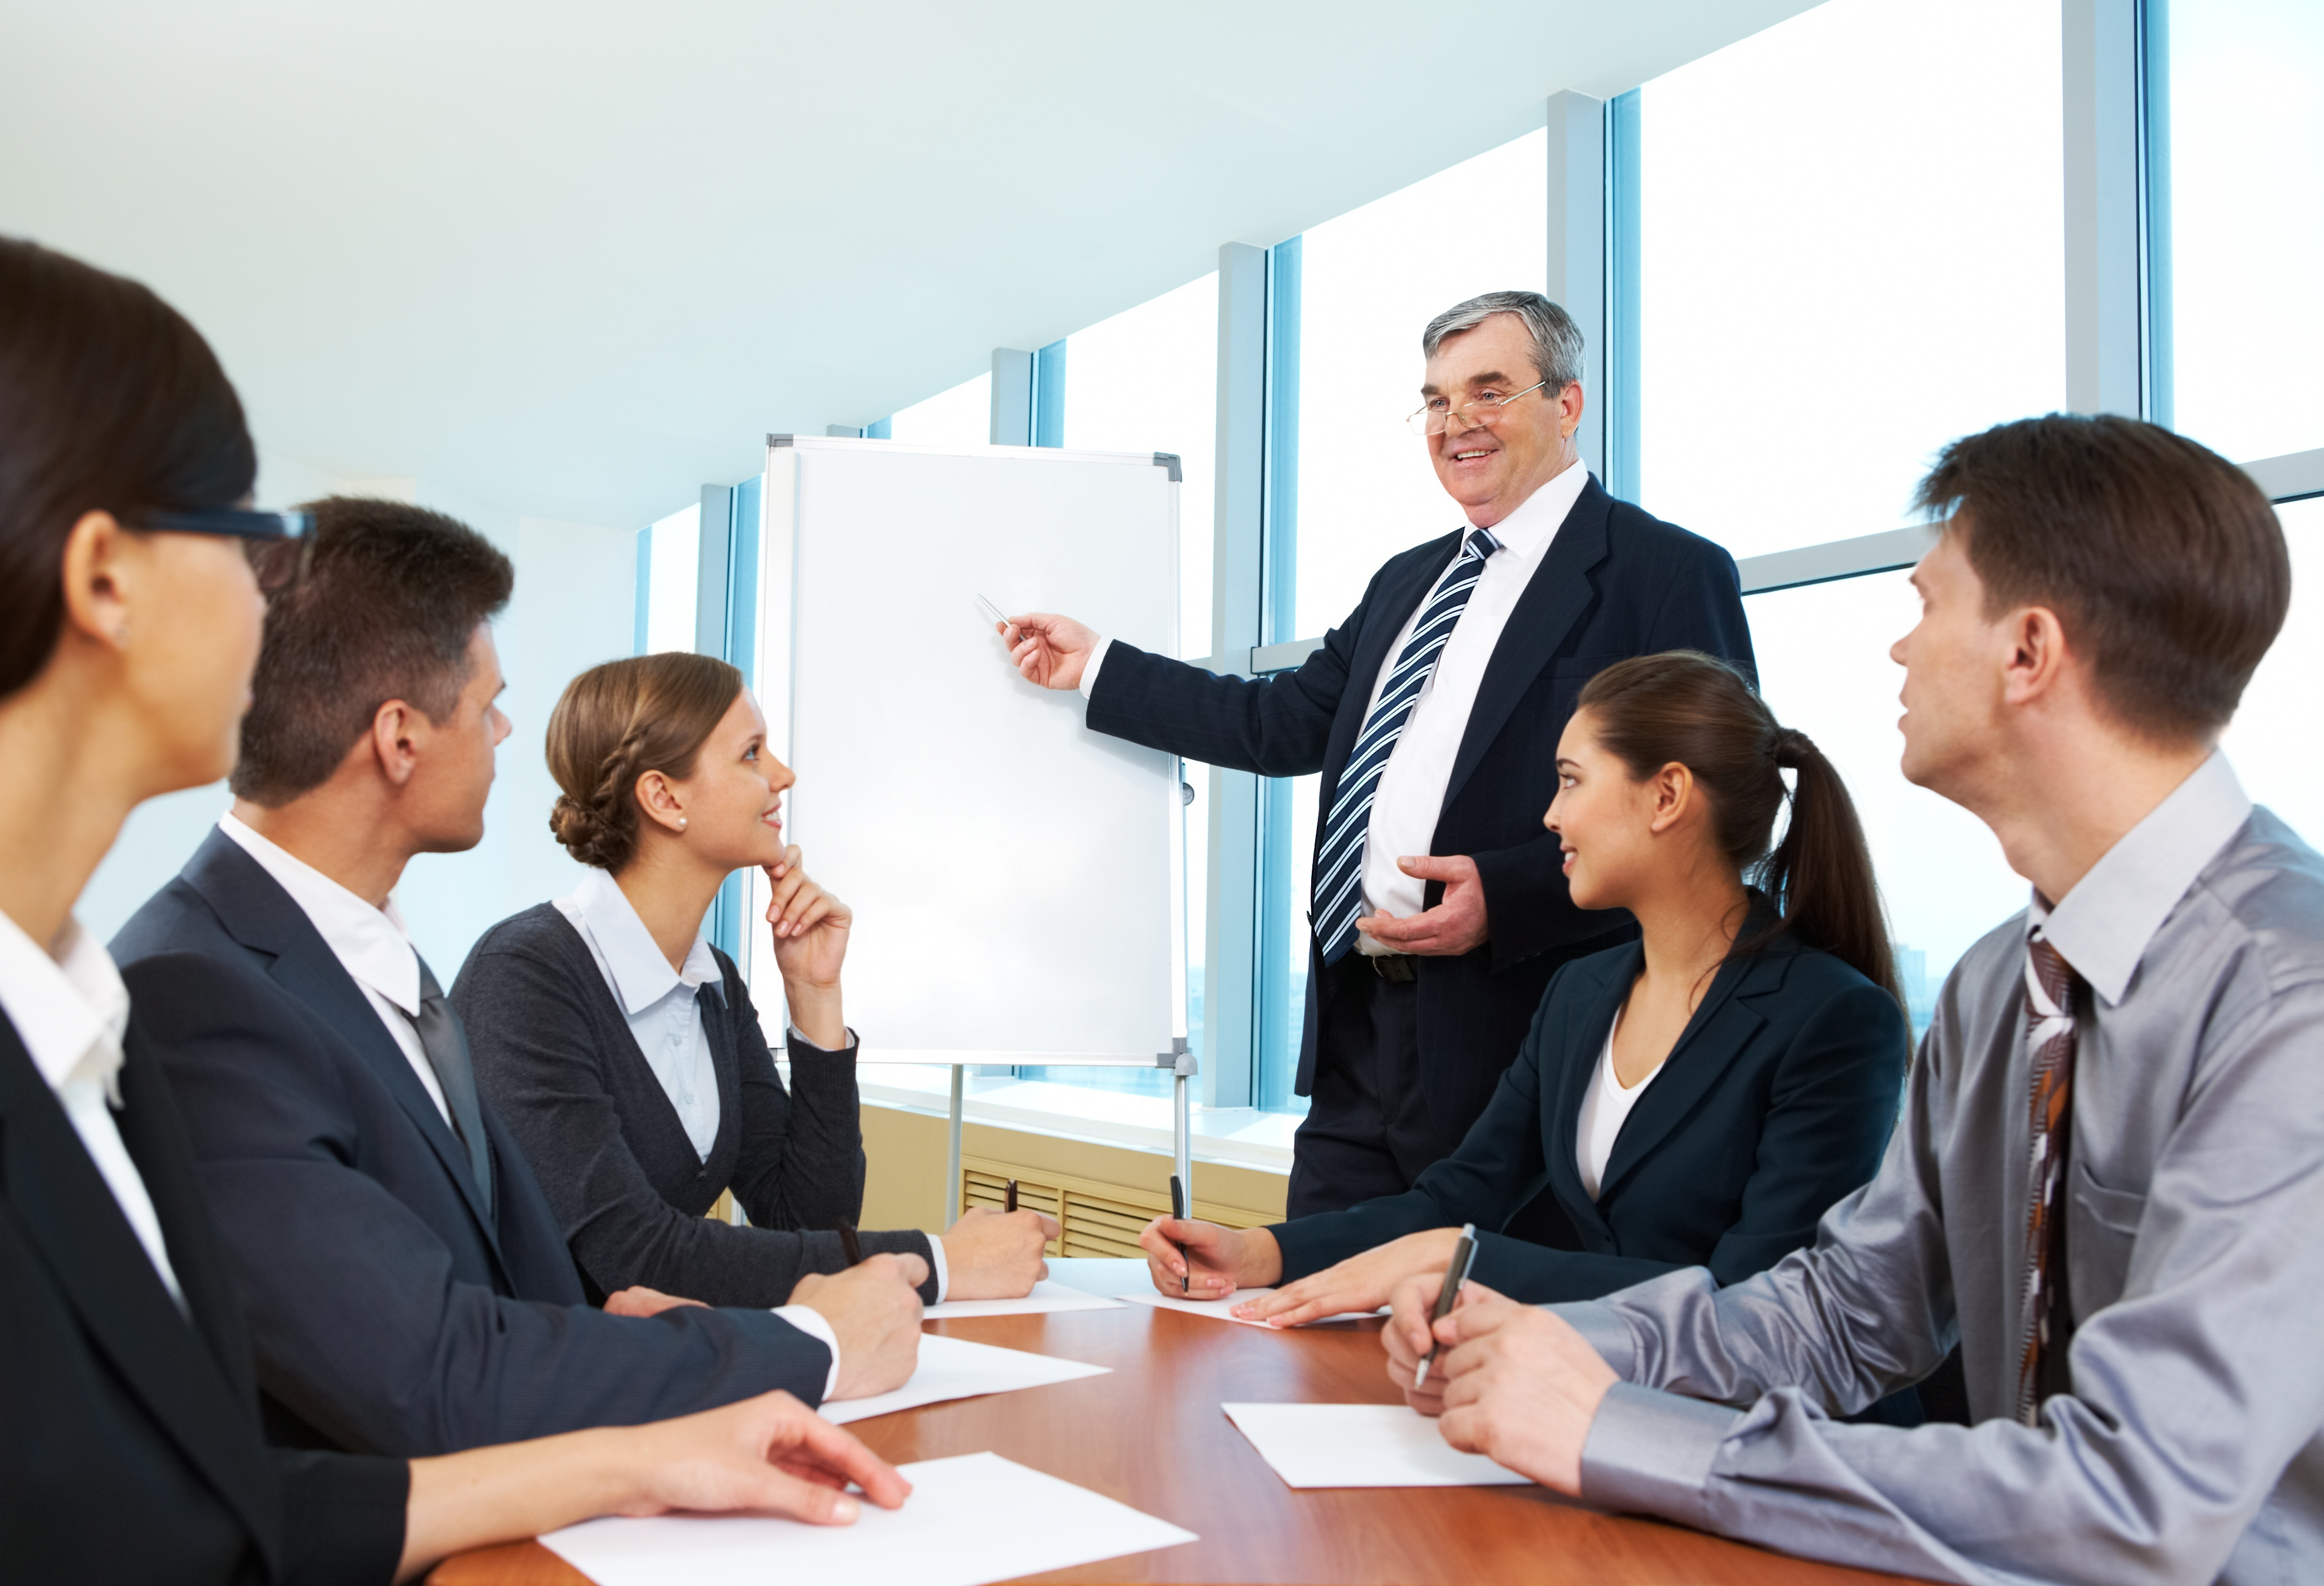 bd academy for top 100 accounting firms, networking, referrals, business development, fee growth, cross selling, reputation, personal branding, sales pitching